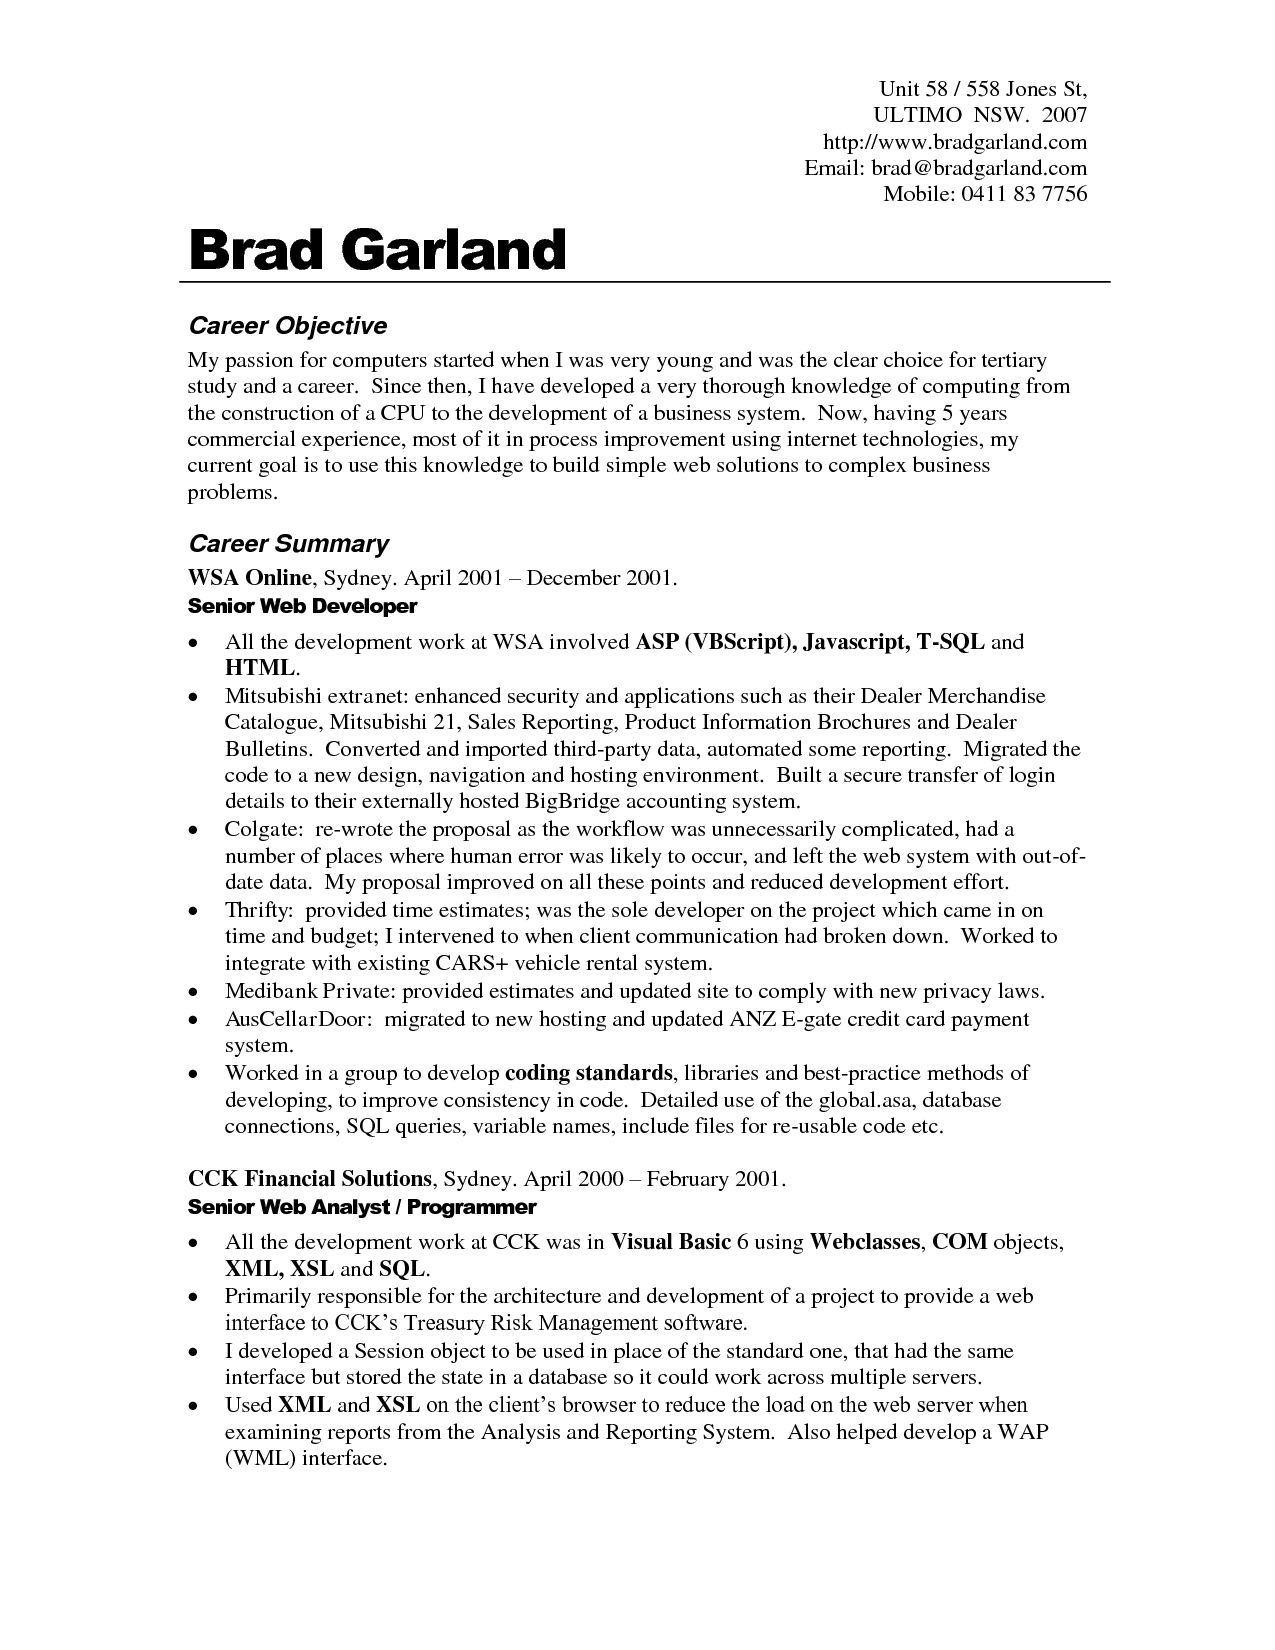 Examples Of Resume Objectives Sample Resume Action Verbs For Lawyers Formatting Back Post